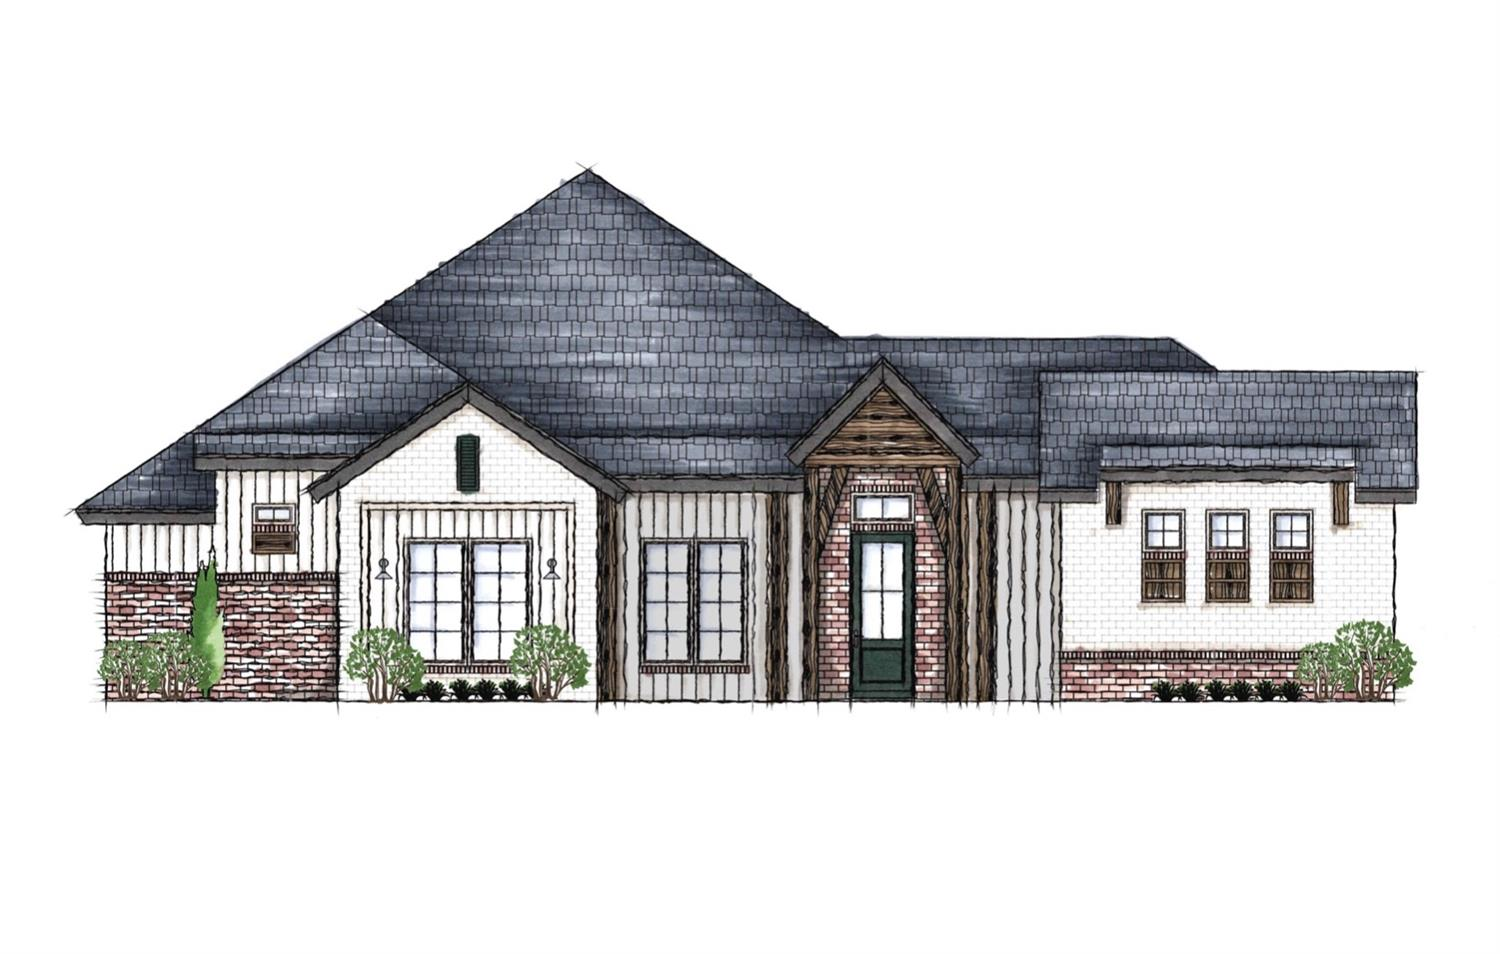 Southern Homes by Dan Wilson is d to present The Bloomsdale. This beautiful 4 bedroom, 3 bathroom, 3 car garage home is beautifully crafted and designed. The Stratford Pointe Neighborhood is located in the popular Cooper School District. Quality construction, fabulous location and a trusted name! WELCOME HOME! Estimated completion is summer 2021!    *All selections are subject to change*